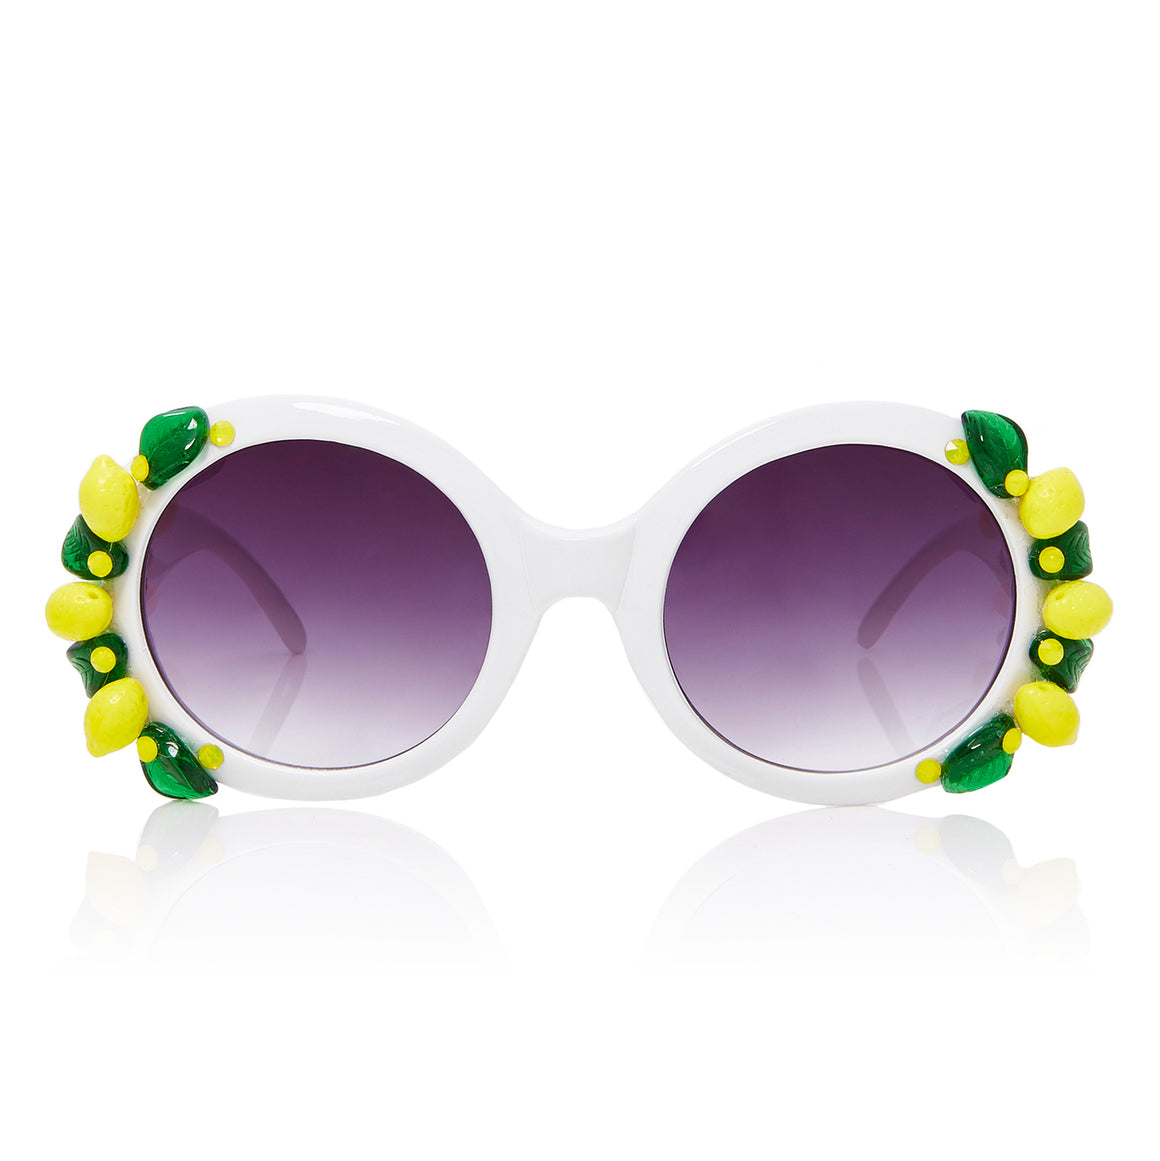 A-Morir Eyewear - Lemon Daquiri White Round With Glass Lemons + Leaves